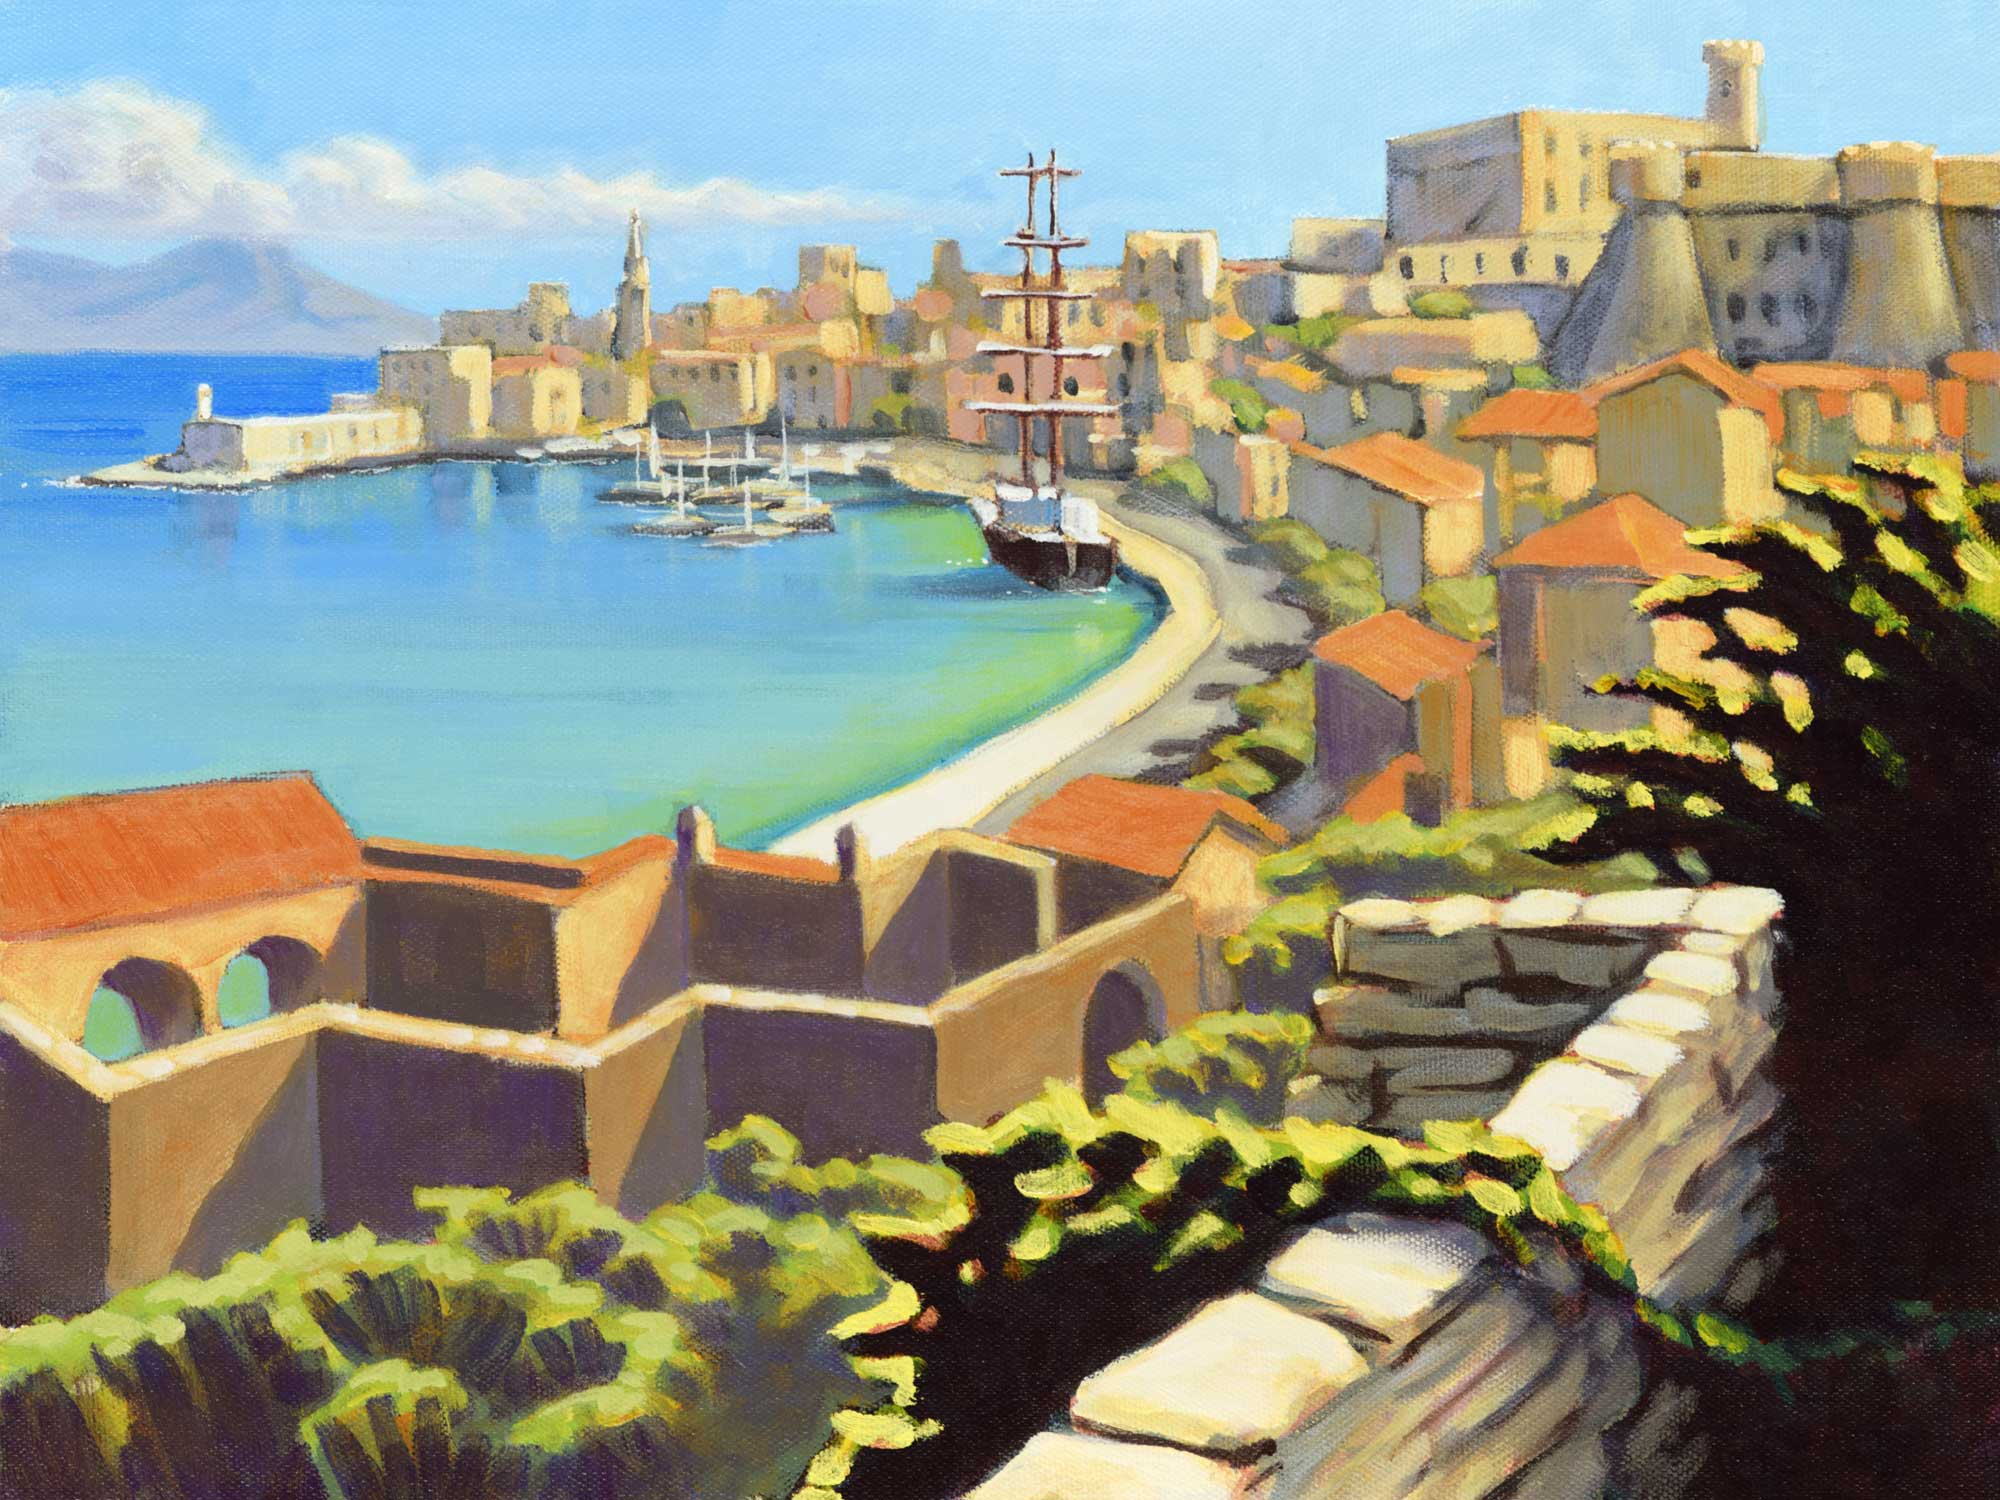 Plein air painting of the harbor and town at Gaeta, Italy